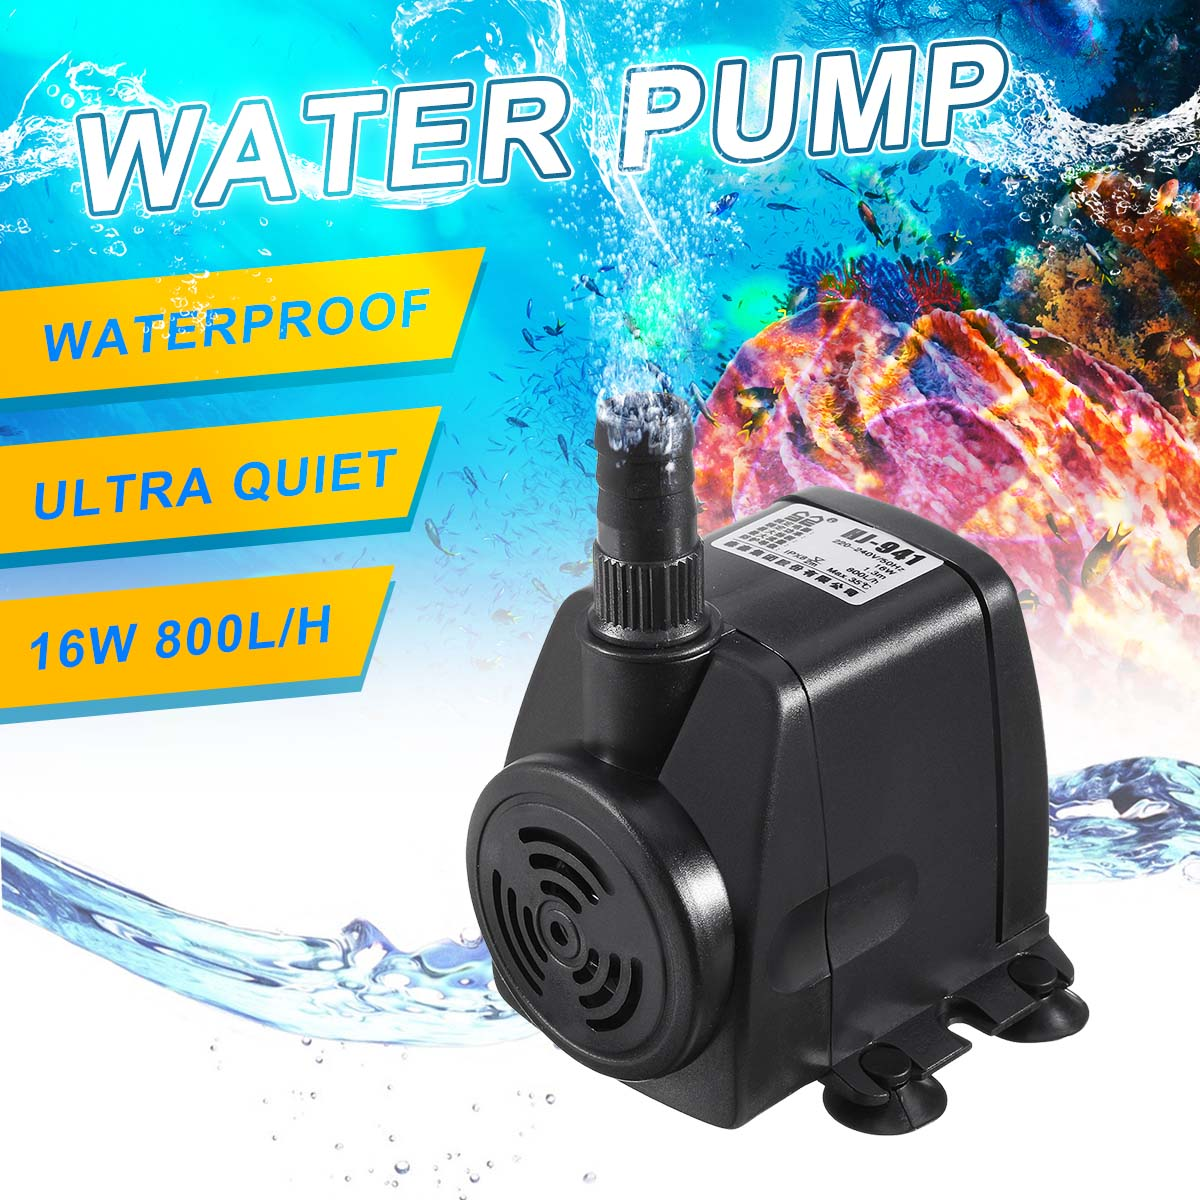 Us 13 11 24 Off 16w Hj 941 Submersible Water Pump 220v 240v 800 L H Aquarium Fish Tank Waterfall Garden Fountain Pond Pool Pumps In From